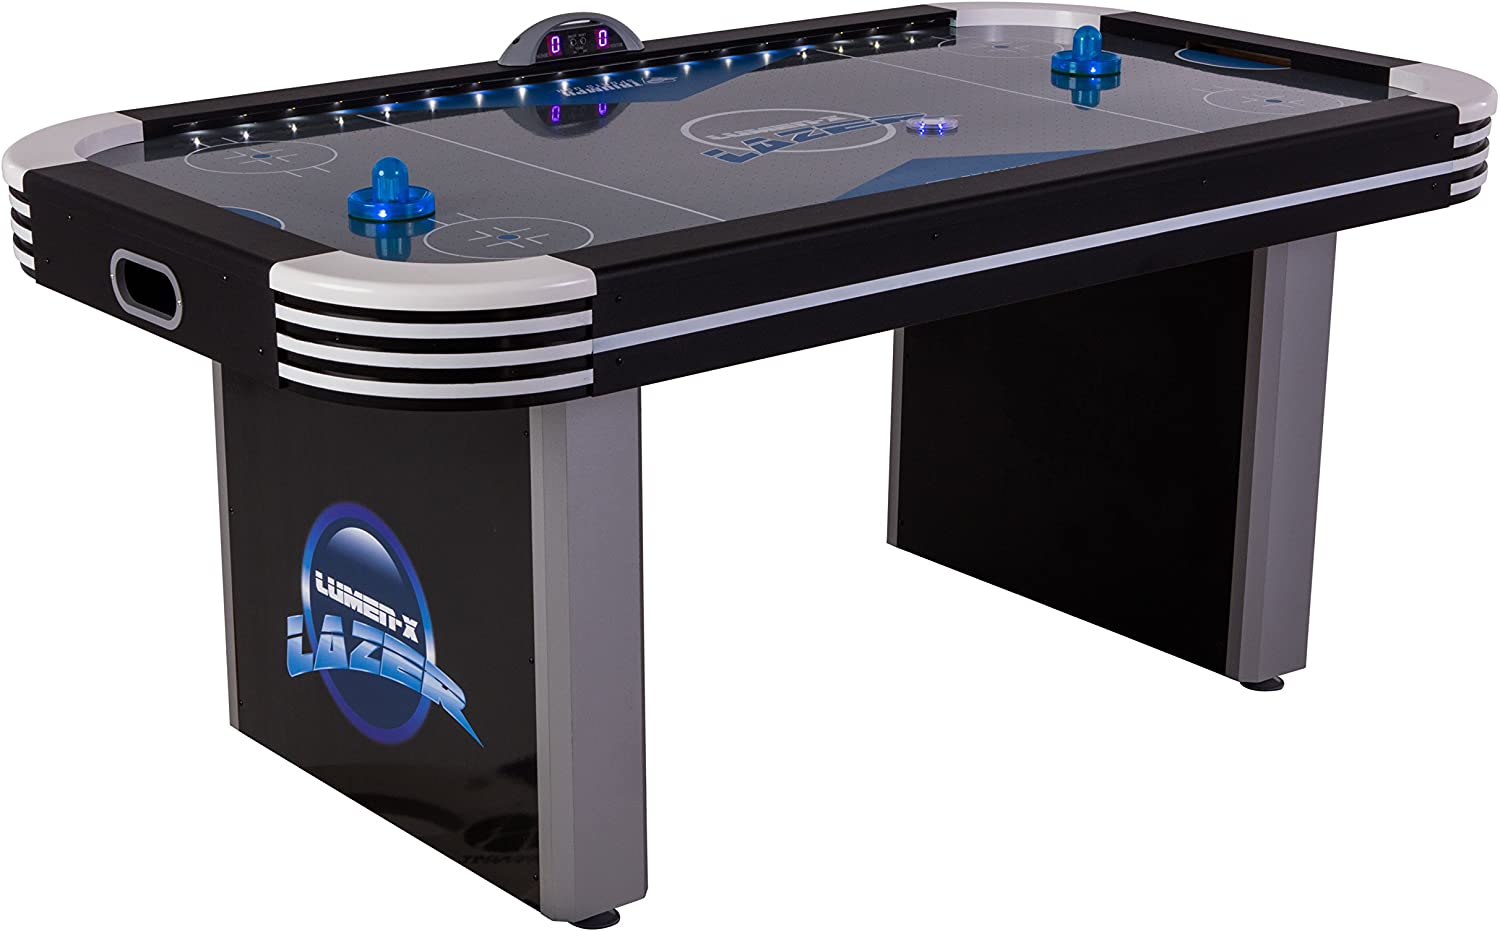 Top 10 Best Air Hockey Table for Kids (2020 Reviews & Guide) 4